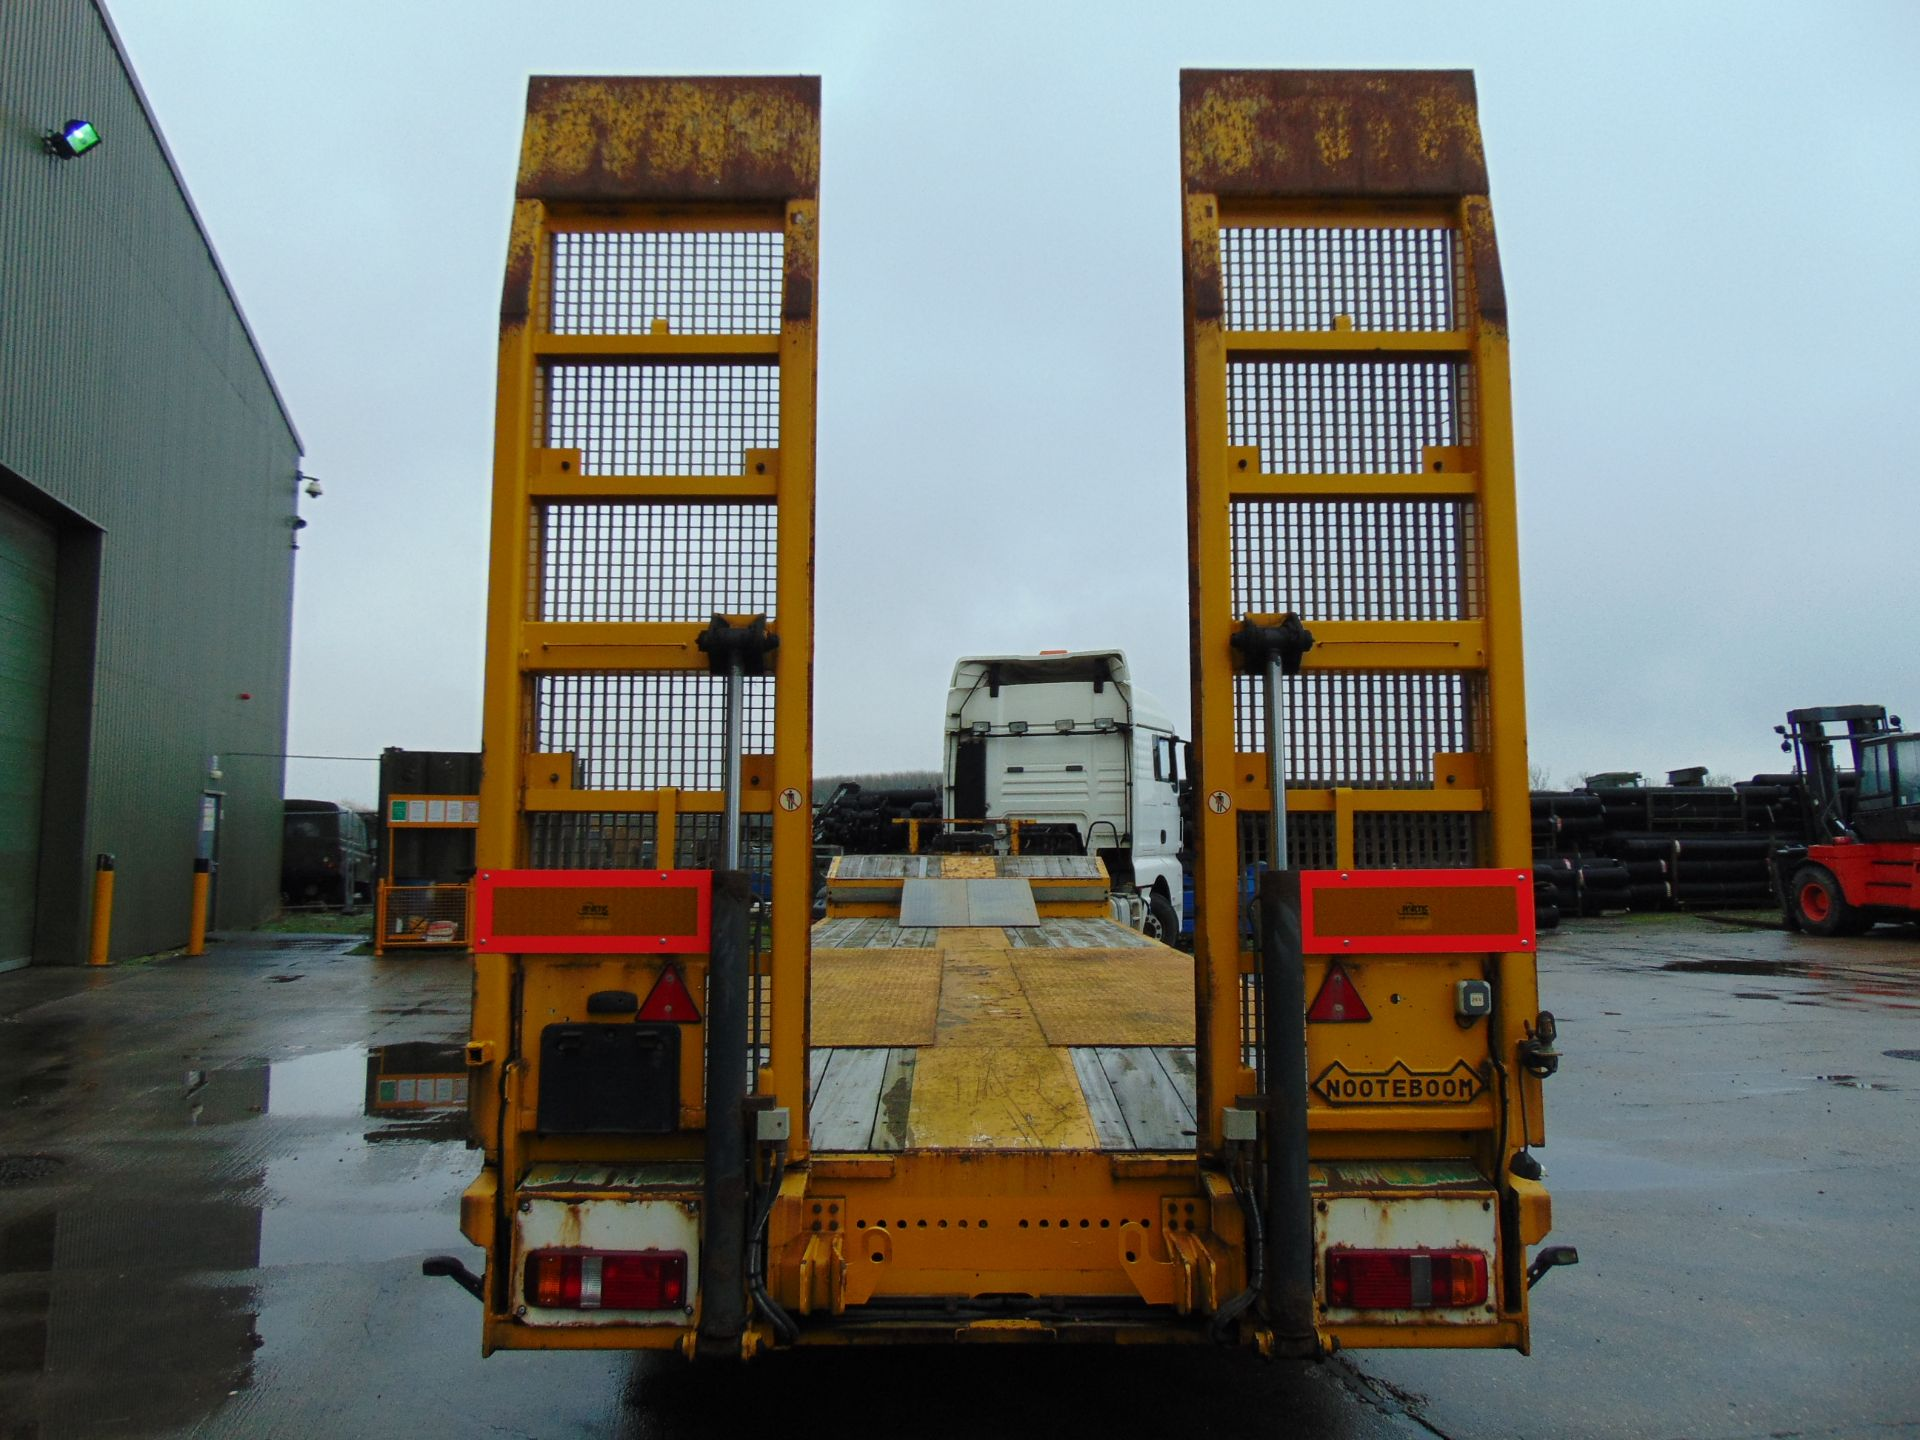 Lot 12 - 2010 Nooteboom OSDS 48-03 Tri Axle Low Loader Trailer